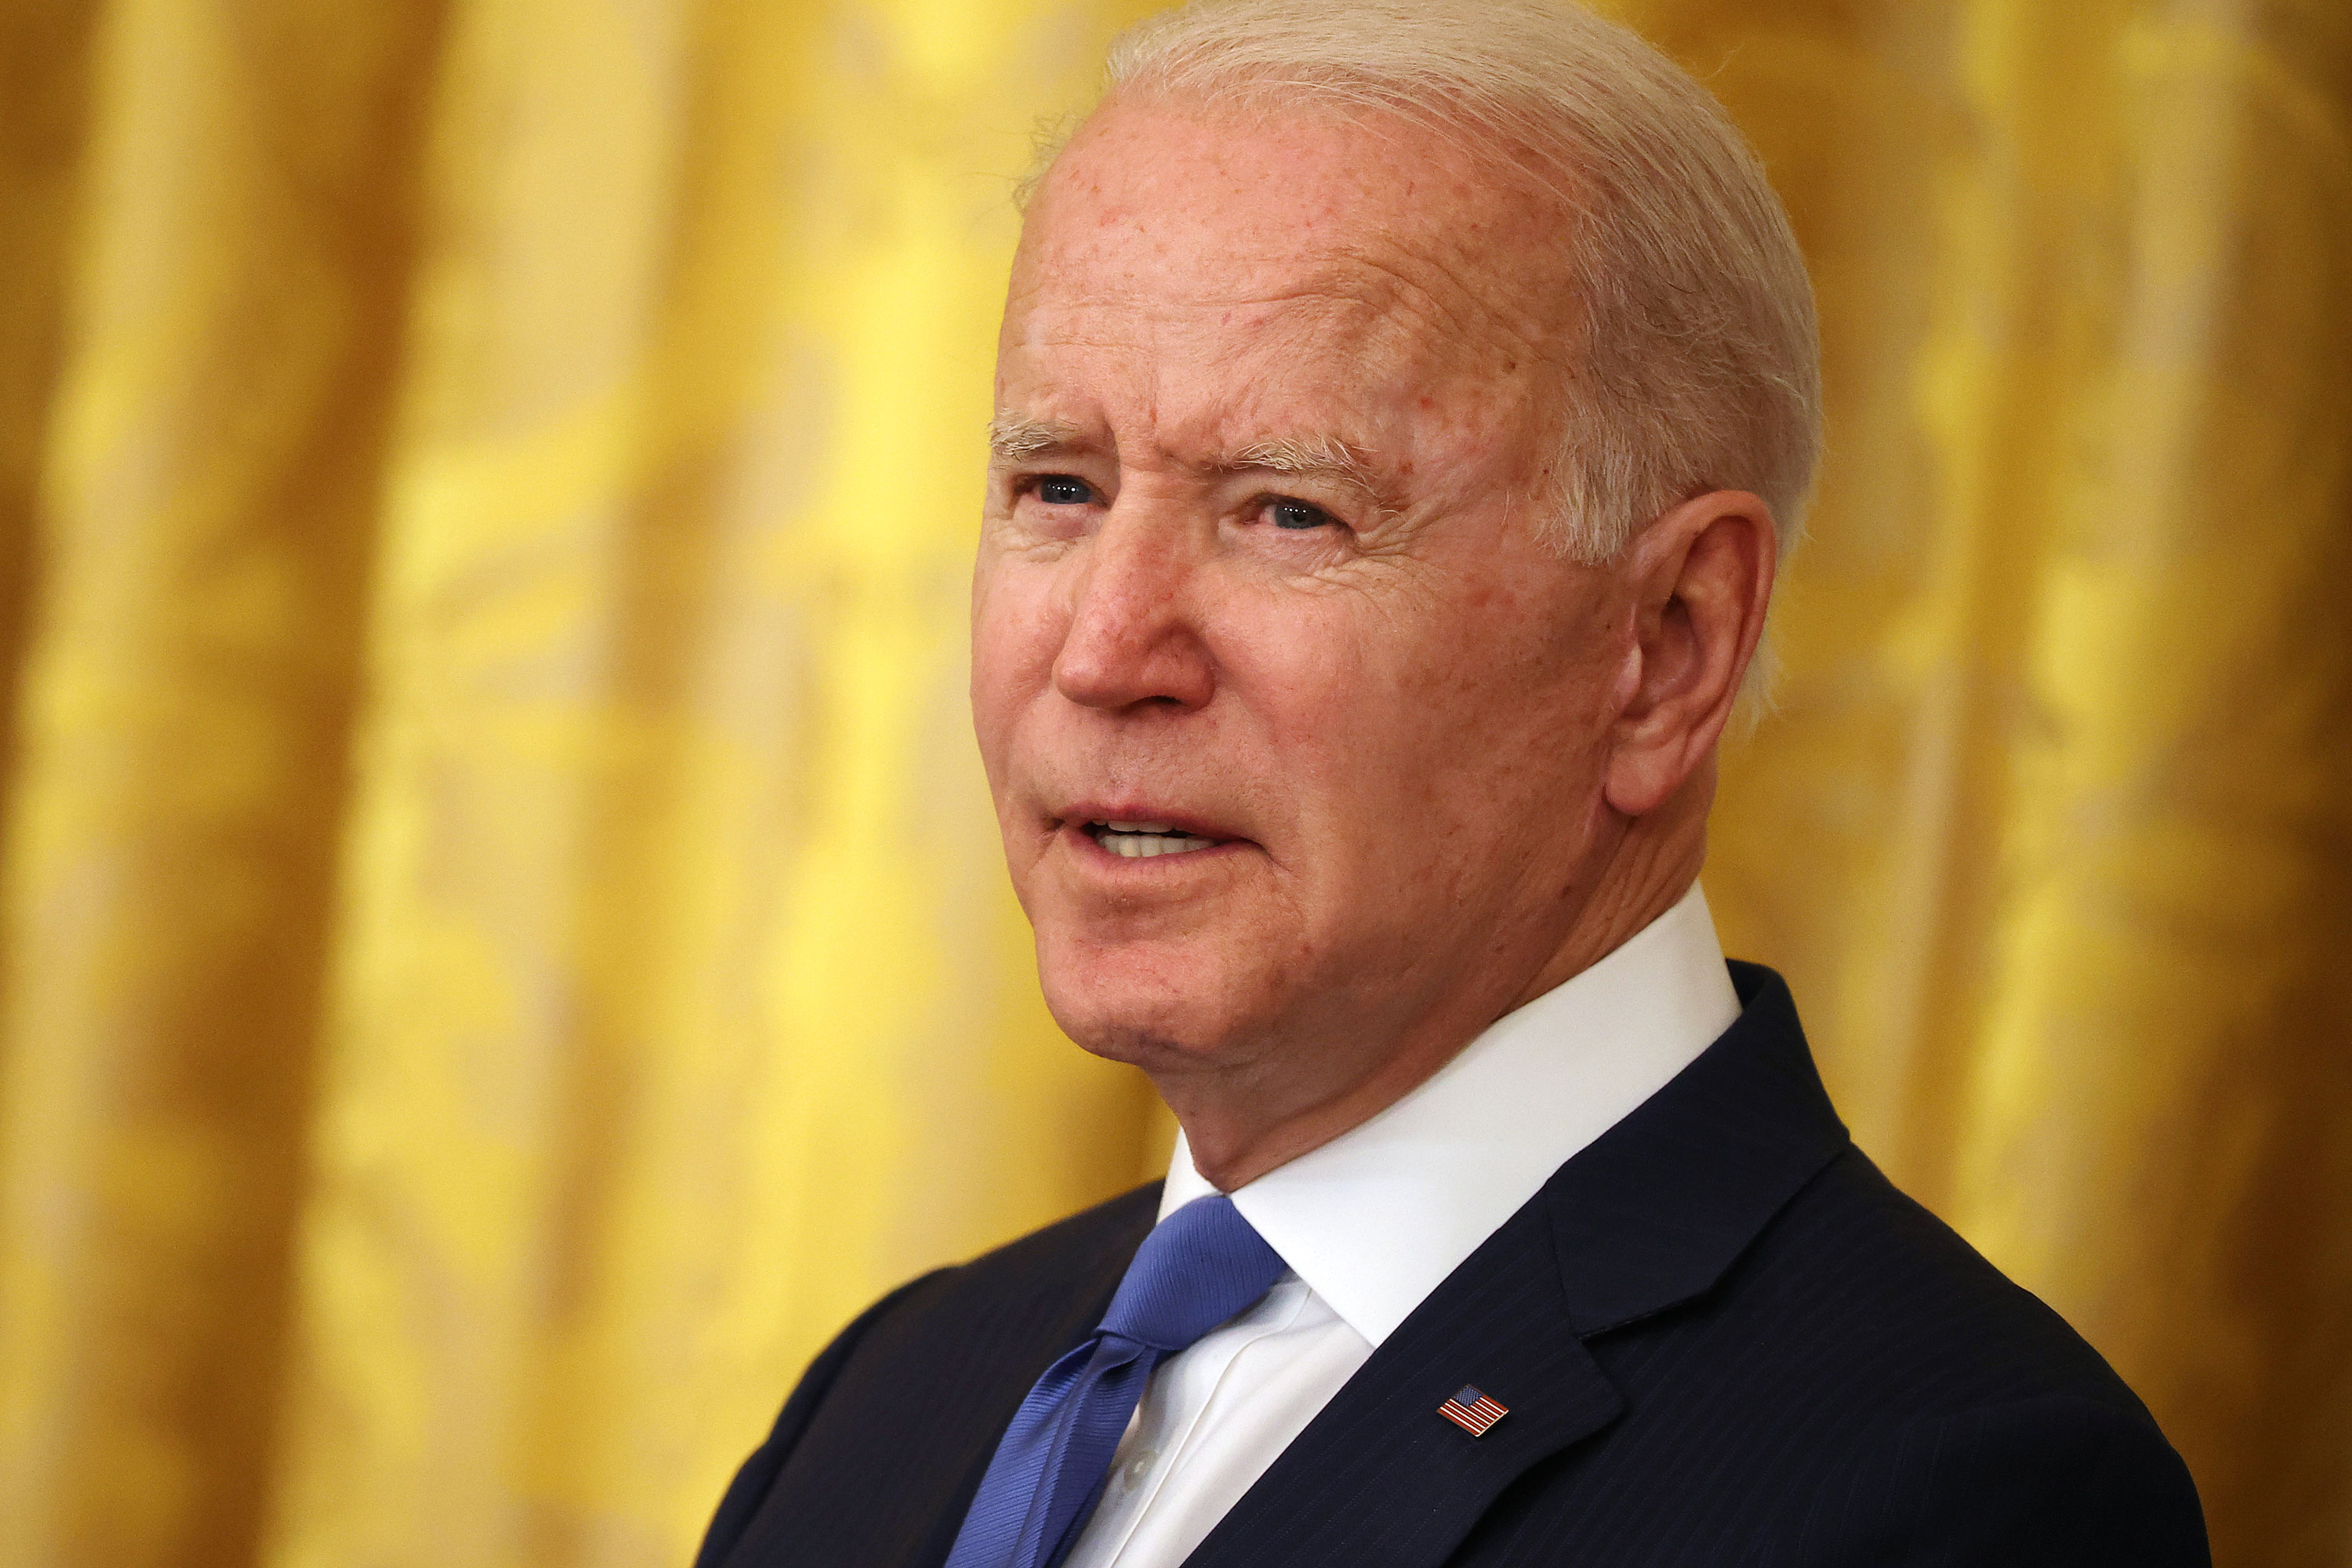 Biden grows visibly frustrated with questions on Afghanistan: 'I want to talk about happy things'